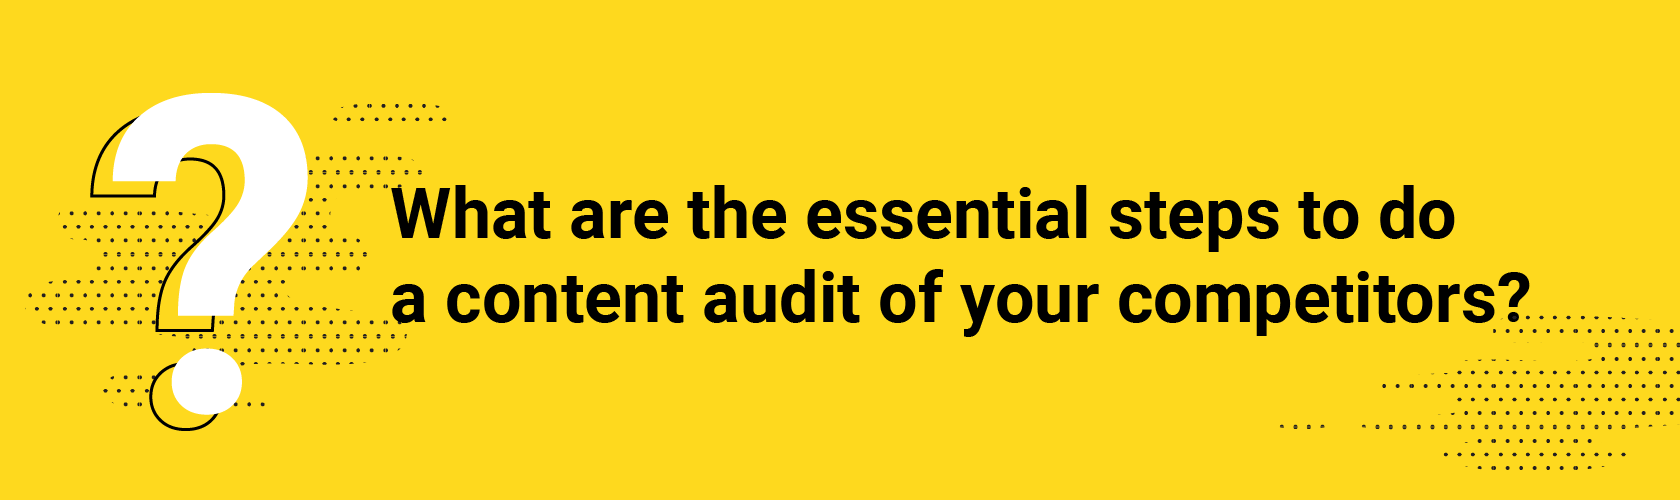 Q2. What are the essential steps to do a content audit of your competitors?